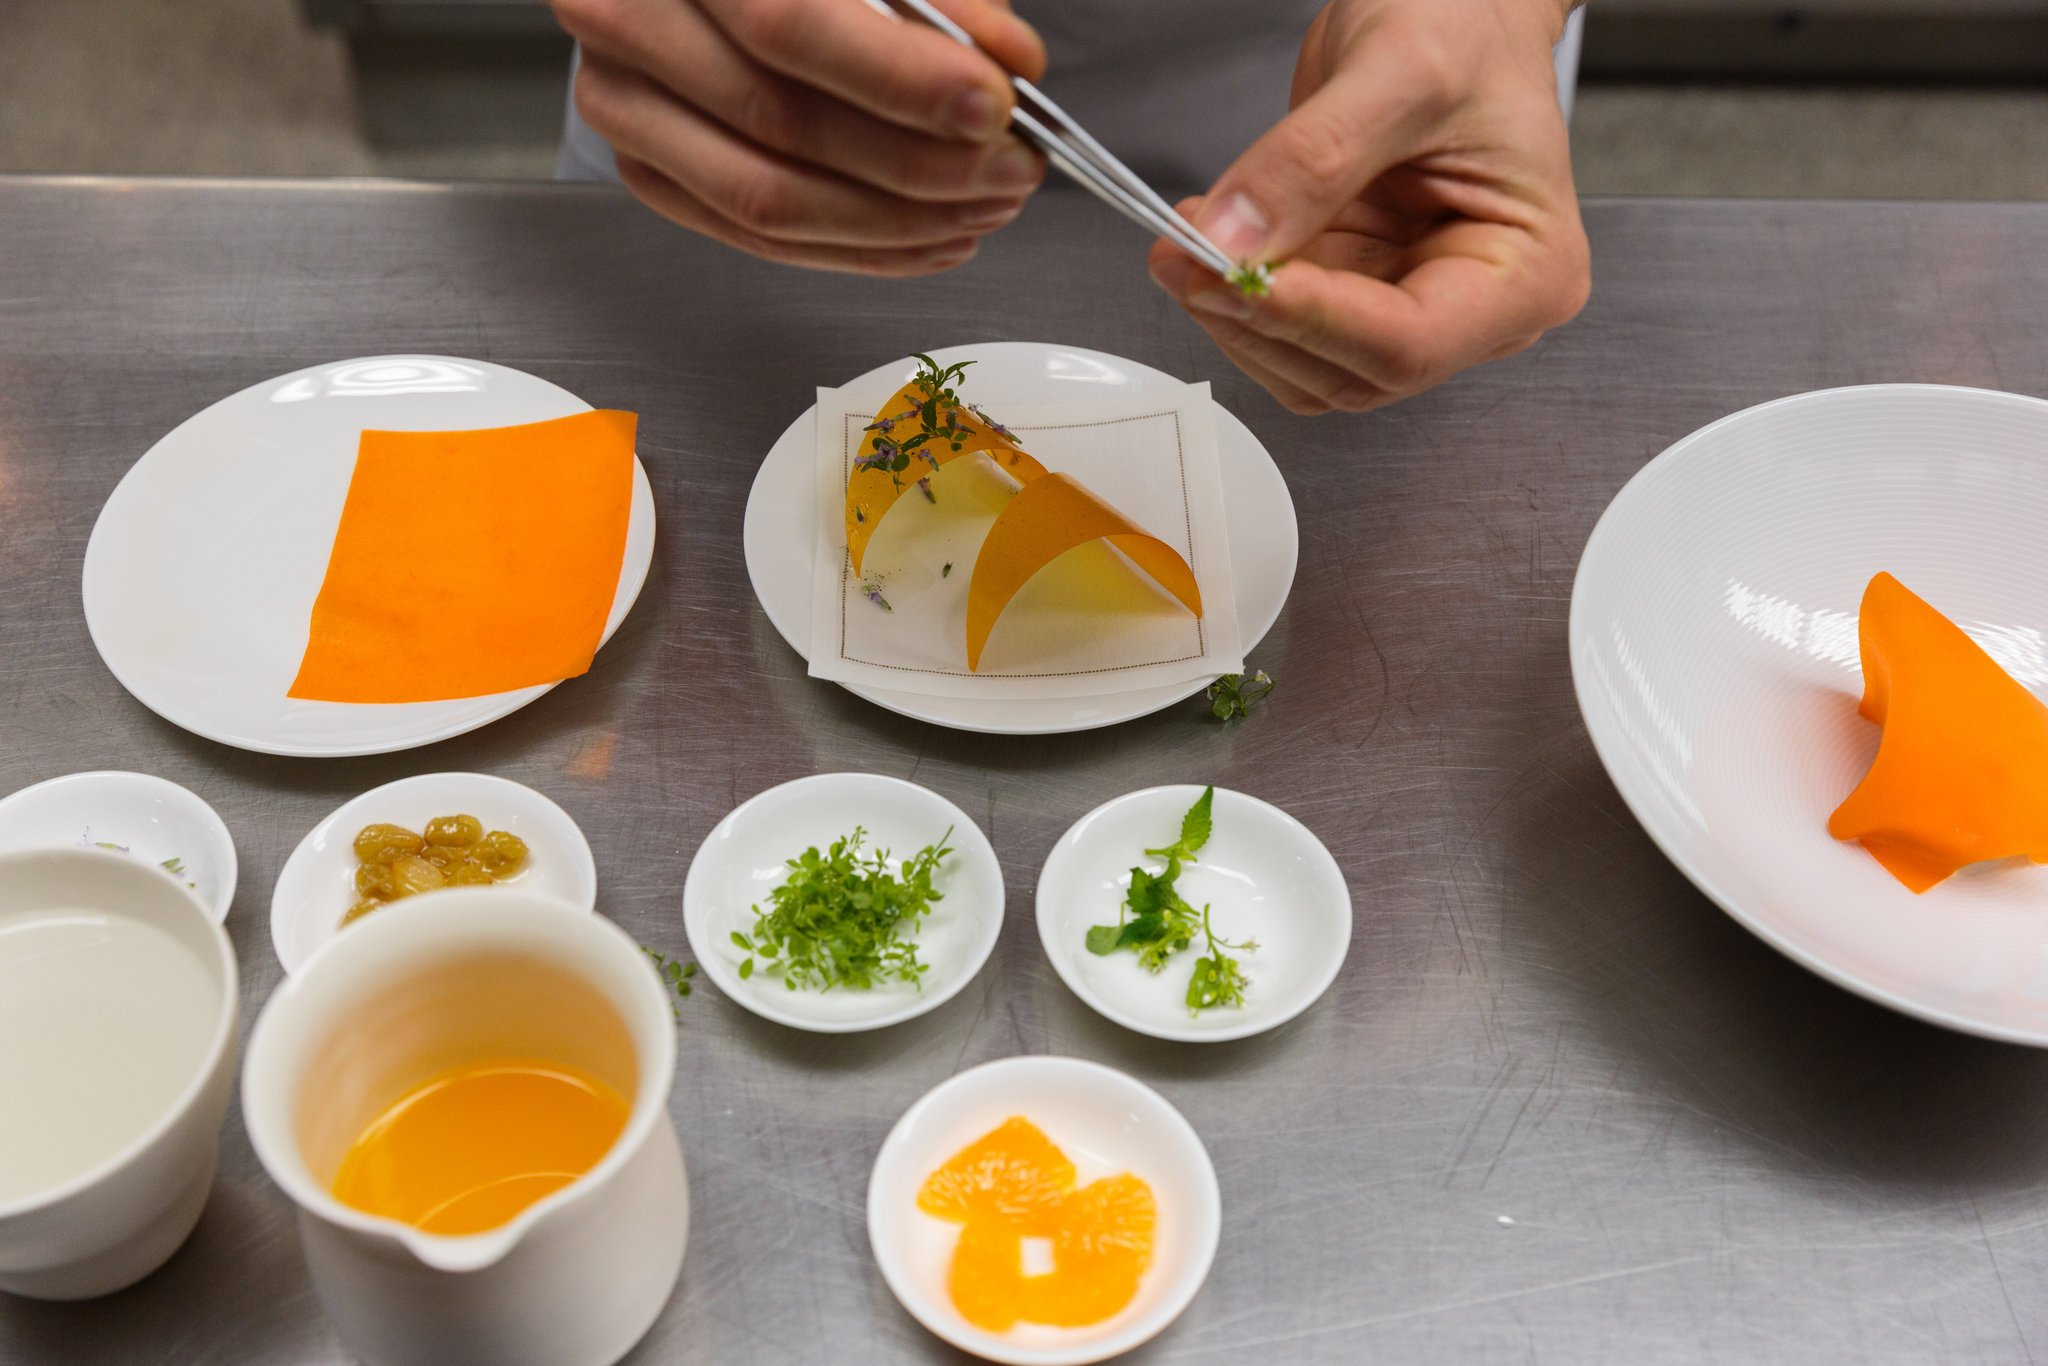 At  Atera , a restaurant housed in the same building as Farm.One, there is a course in which the chef, tableside, dresses a dish with the herbs sourced from the basement.